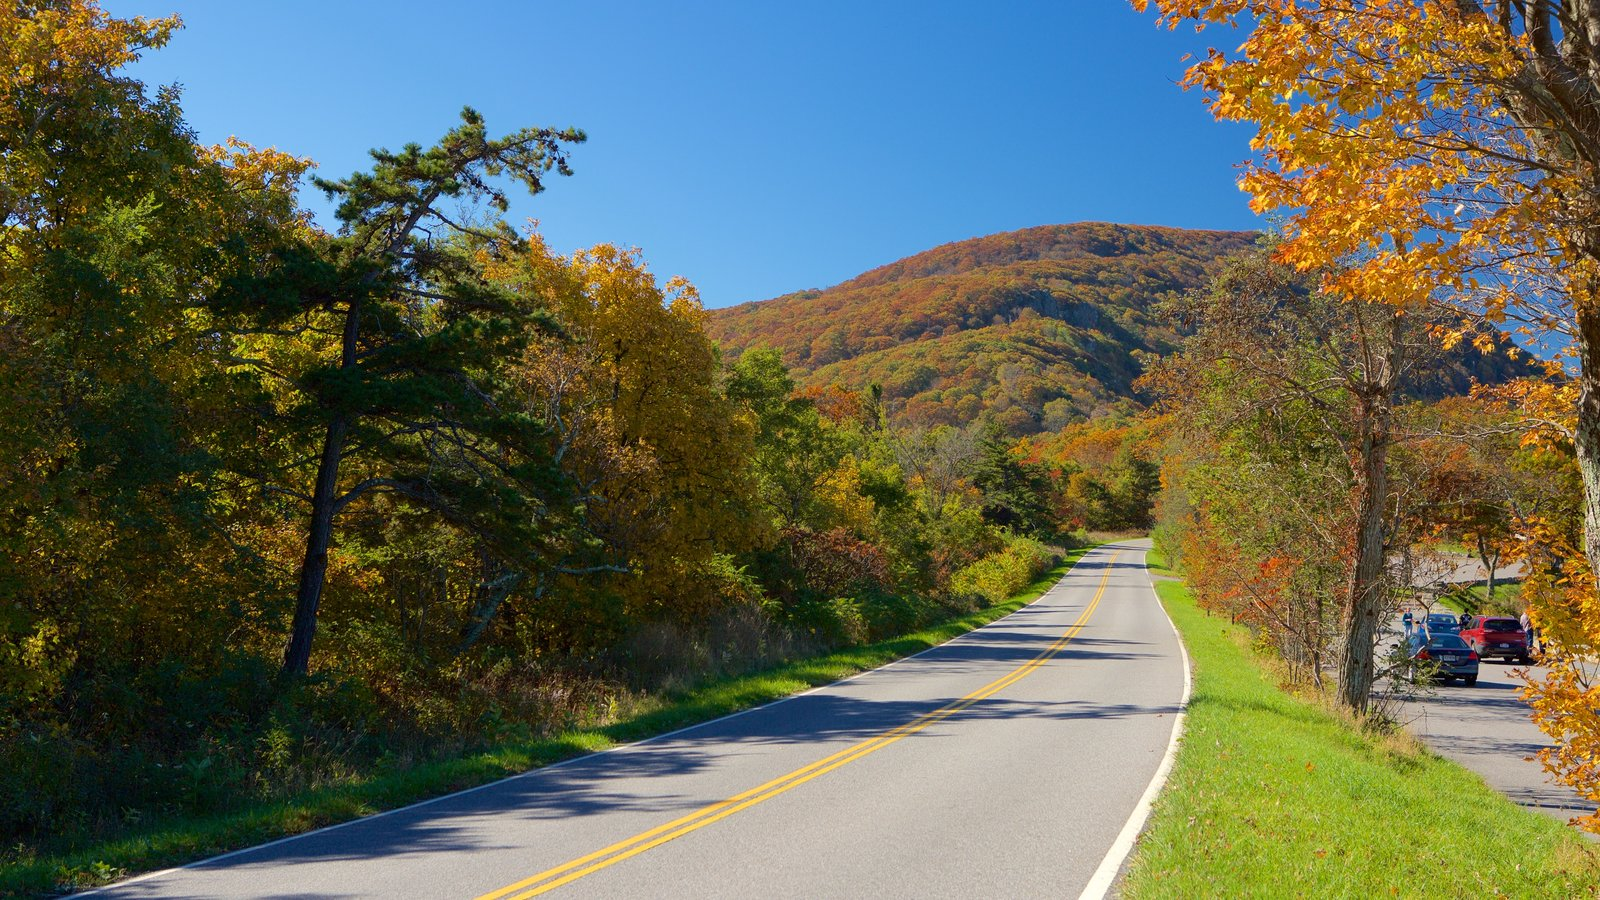 Shenandoah National Park showing autumn leaves, mountains and forests